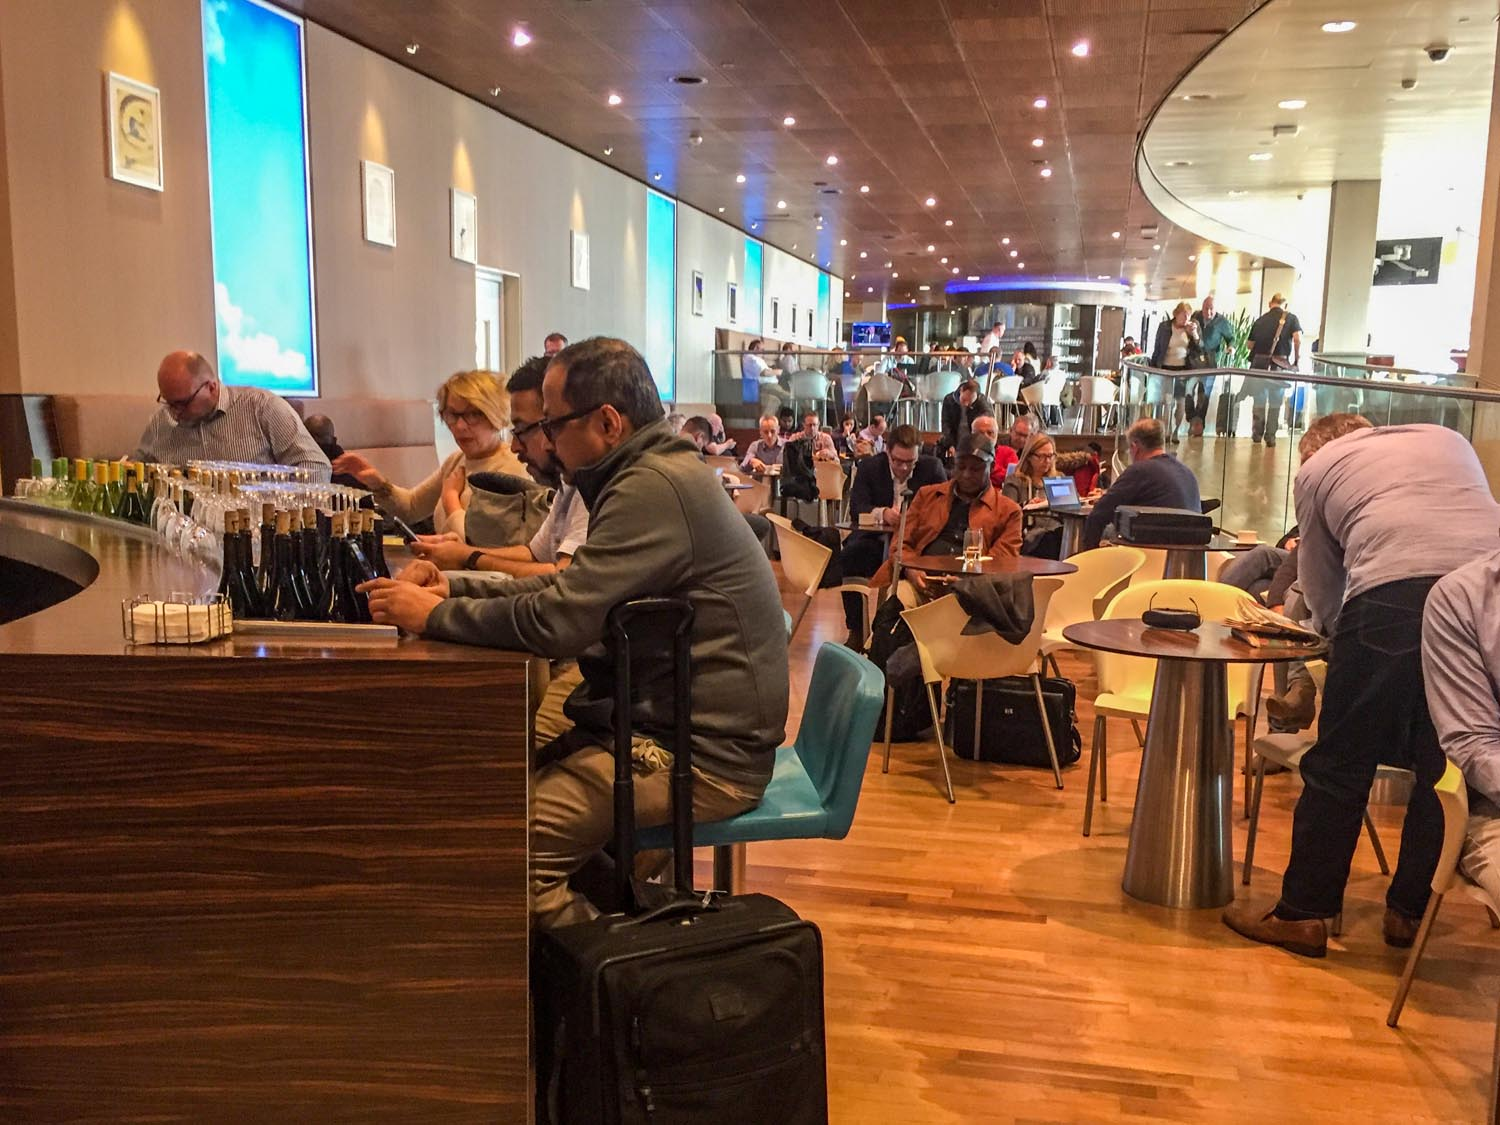 A very crowded KLM Crown Lounge 52